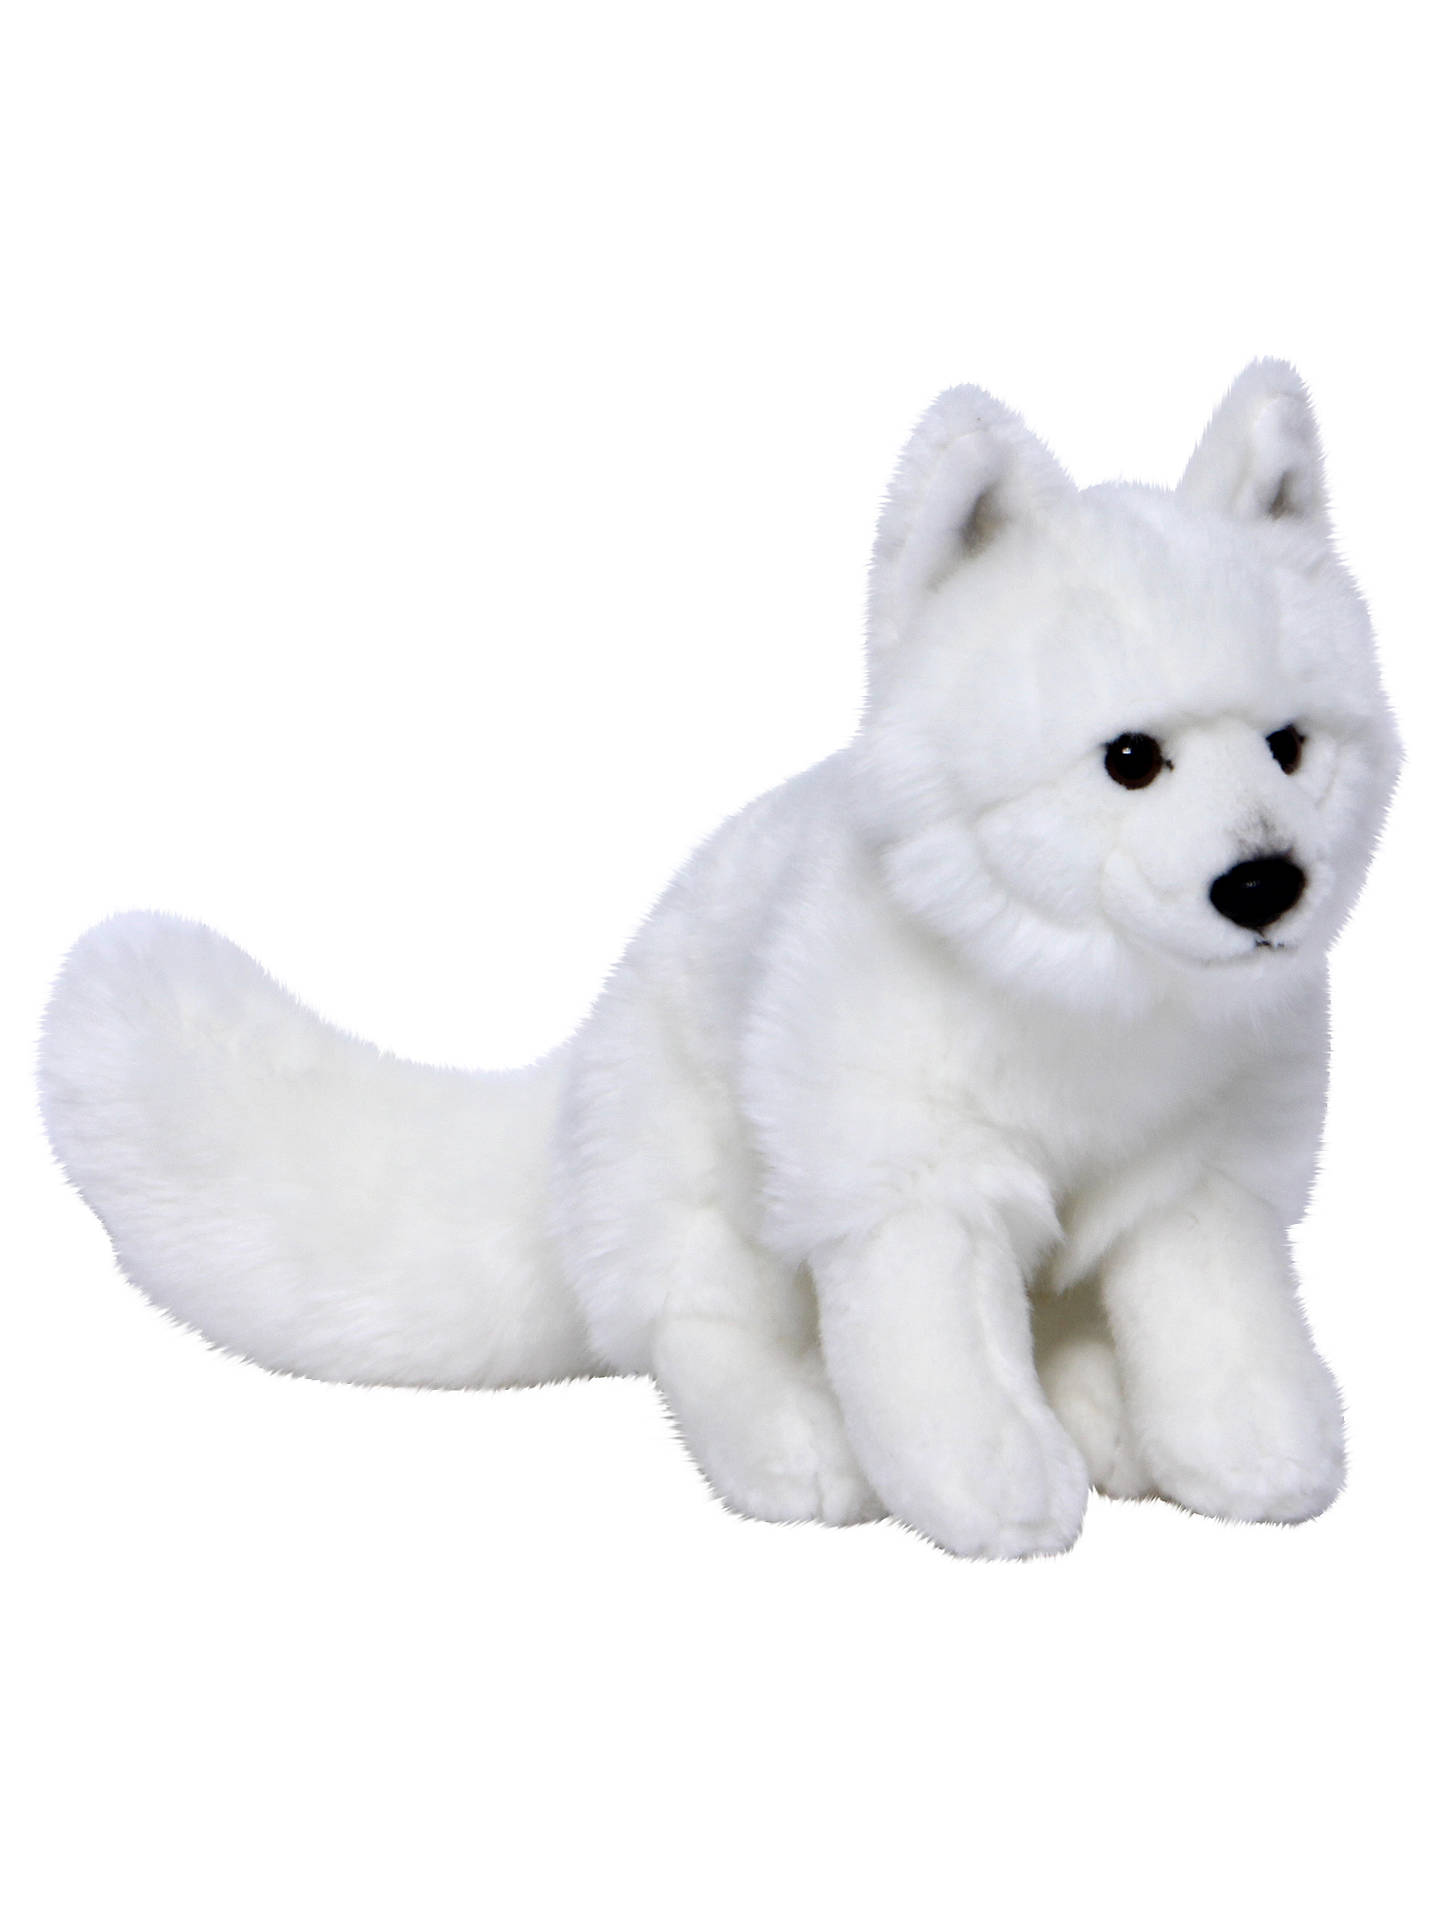 BuyLiving Nature Arctic Fox Plush Soft Toy, White Online at johnlewis.com